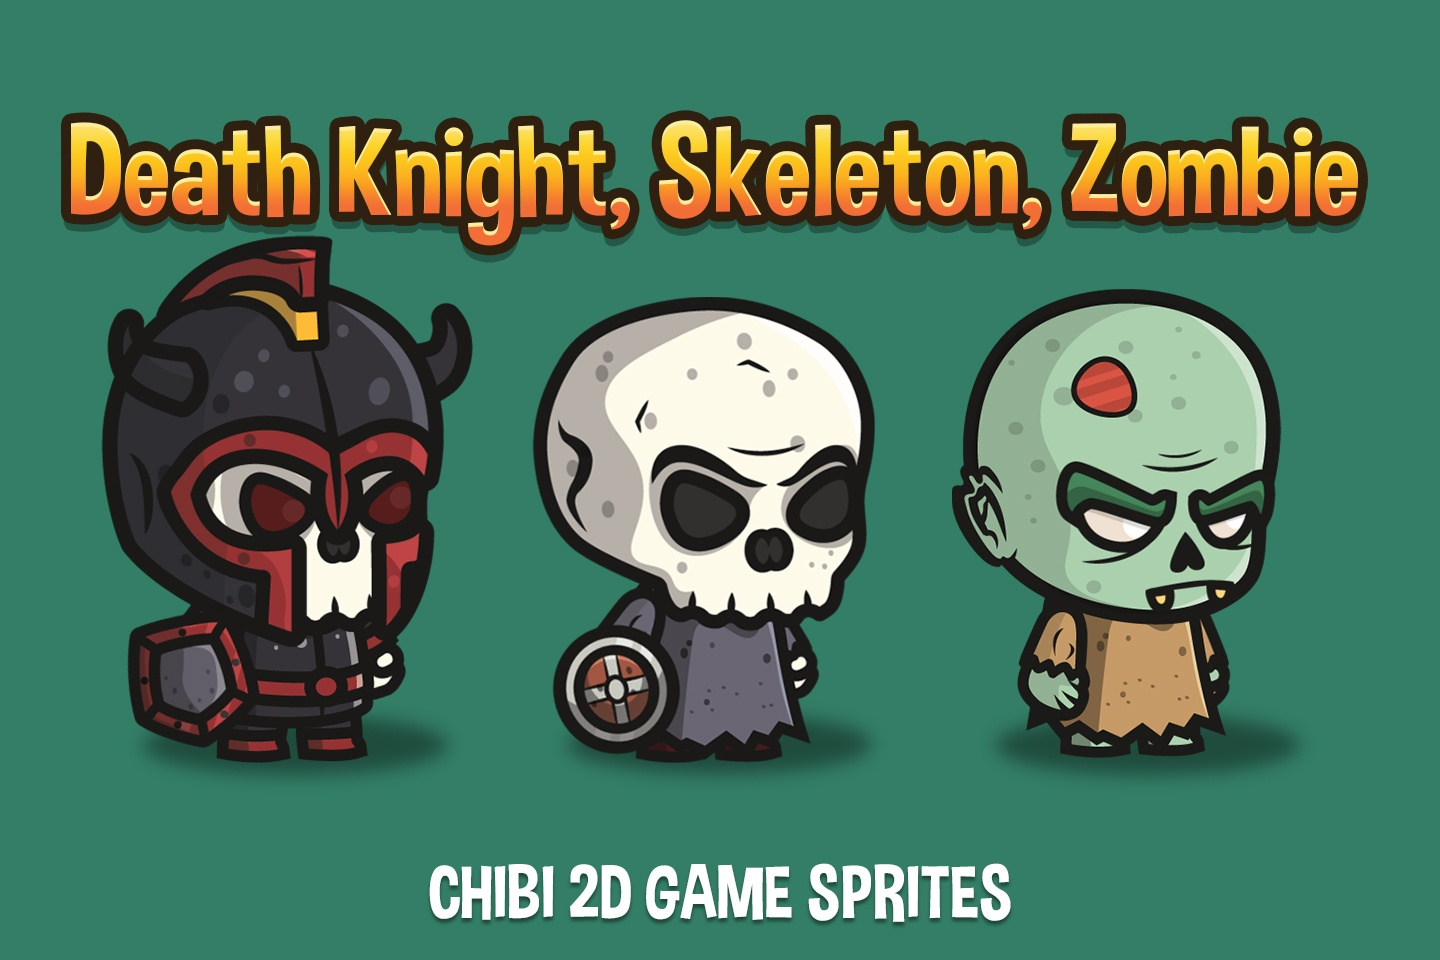 Death Knight, Skeleton, Zombie Chibi 2D Game Sprites